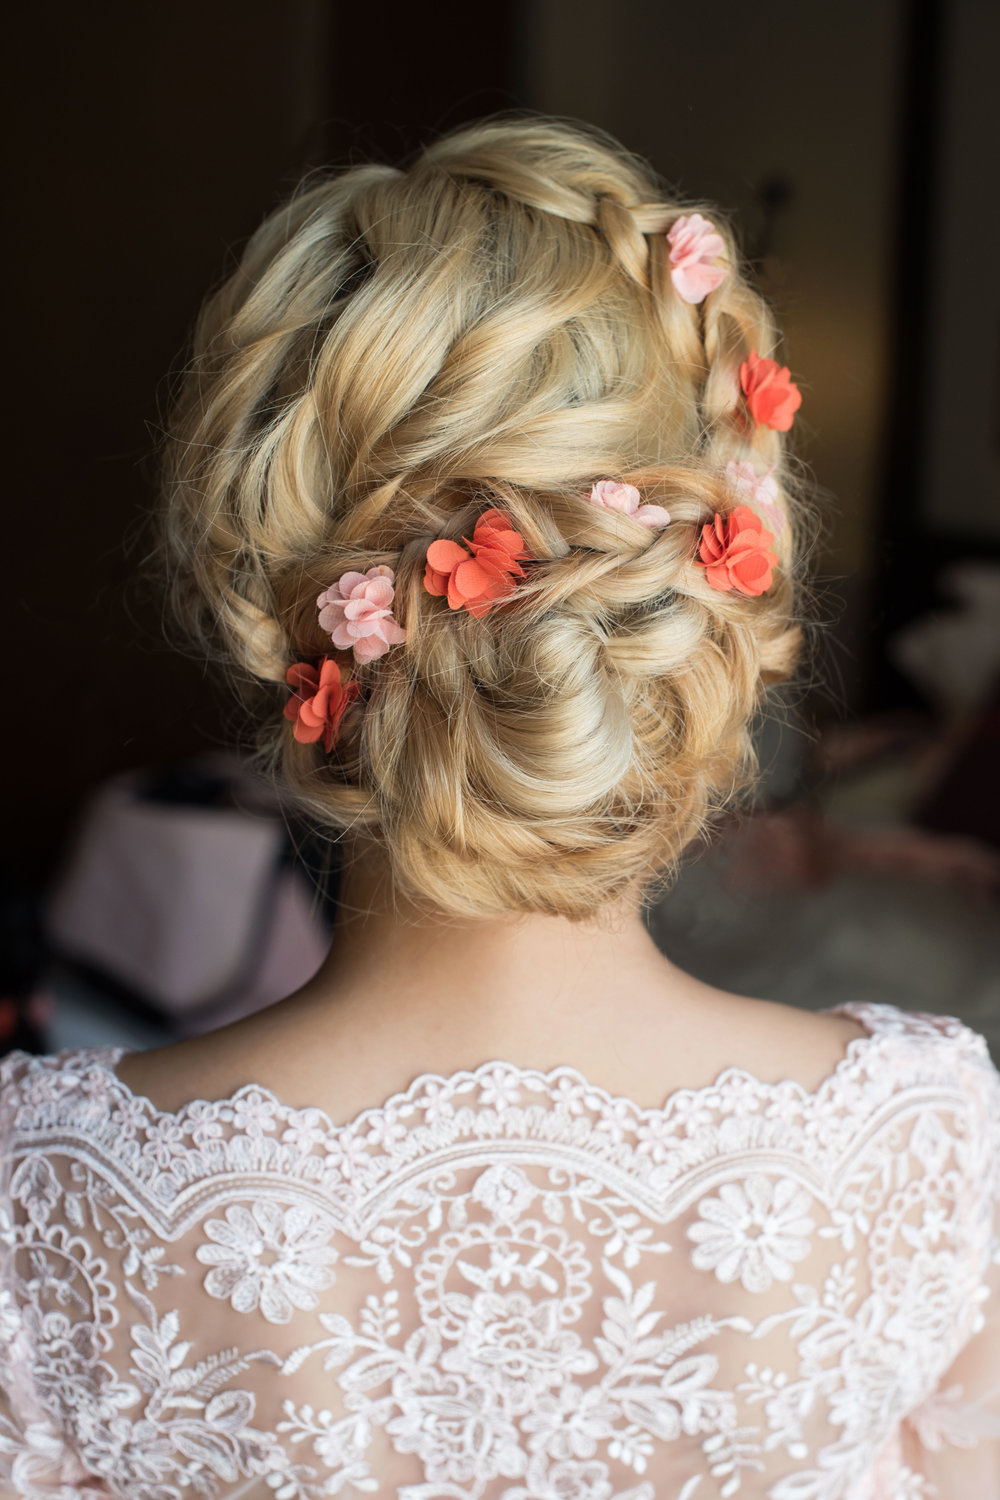 Bridal romantic updo side hairstyle LA Los Angeles Beauty Affair_24 copy.jpg